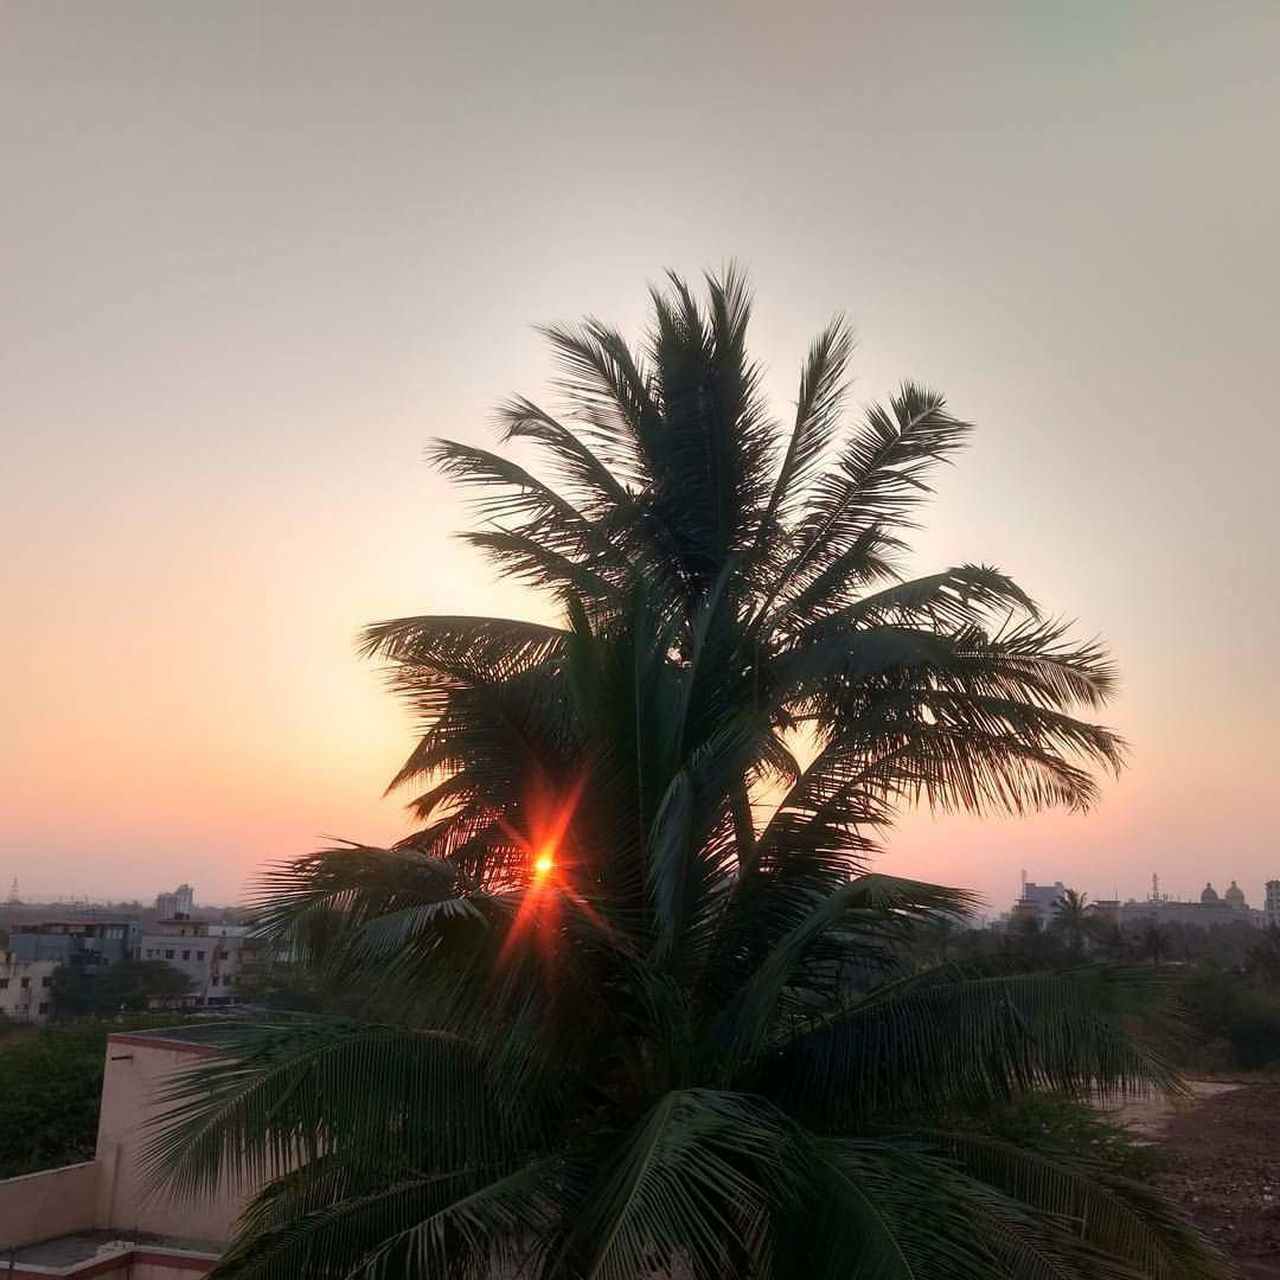 palm tree, tree, sunset, beauty in nature, sky, scenics, nature, tranquil scene, outdoors, tranquility, growth, no people, clear sky, day